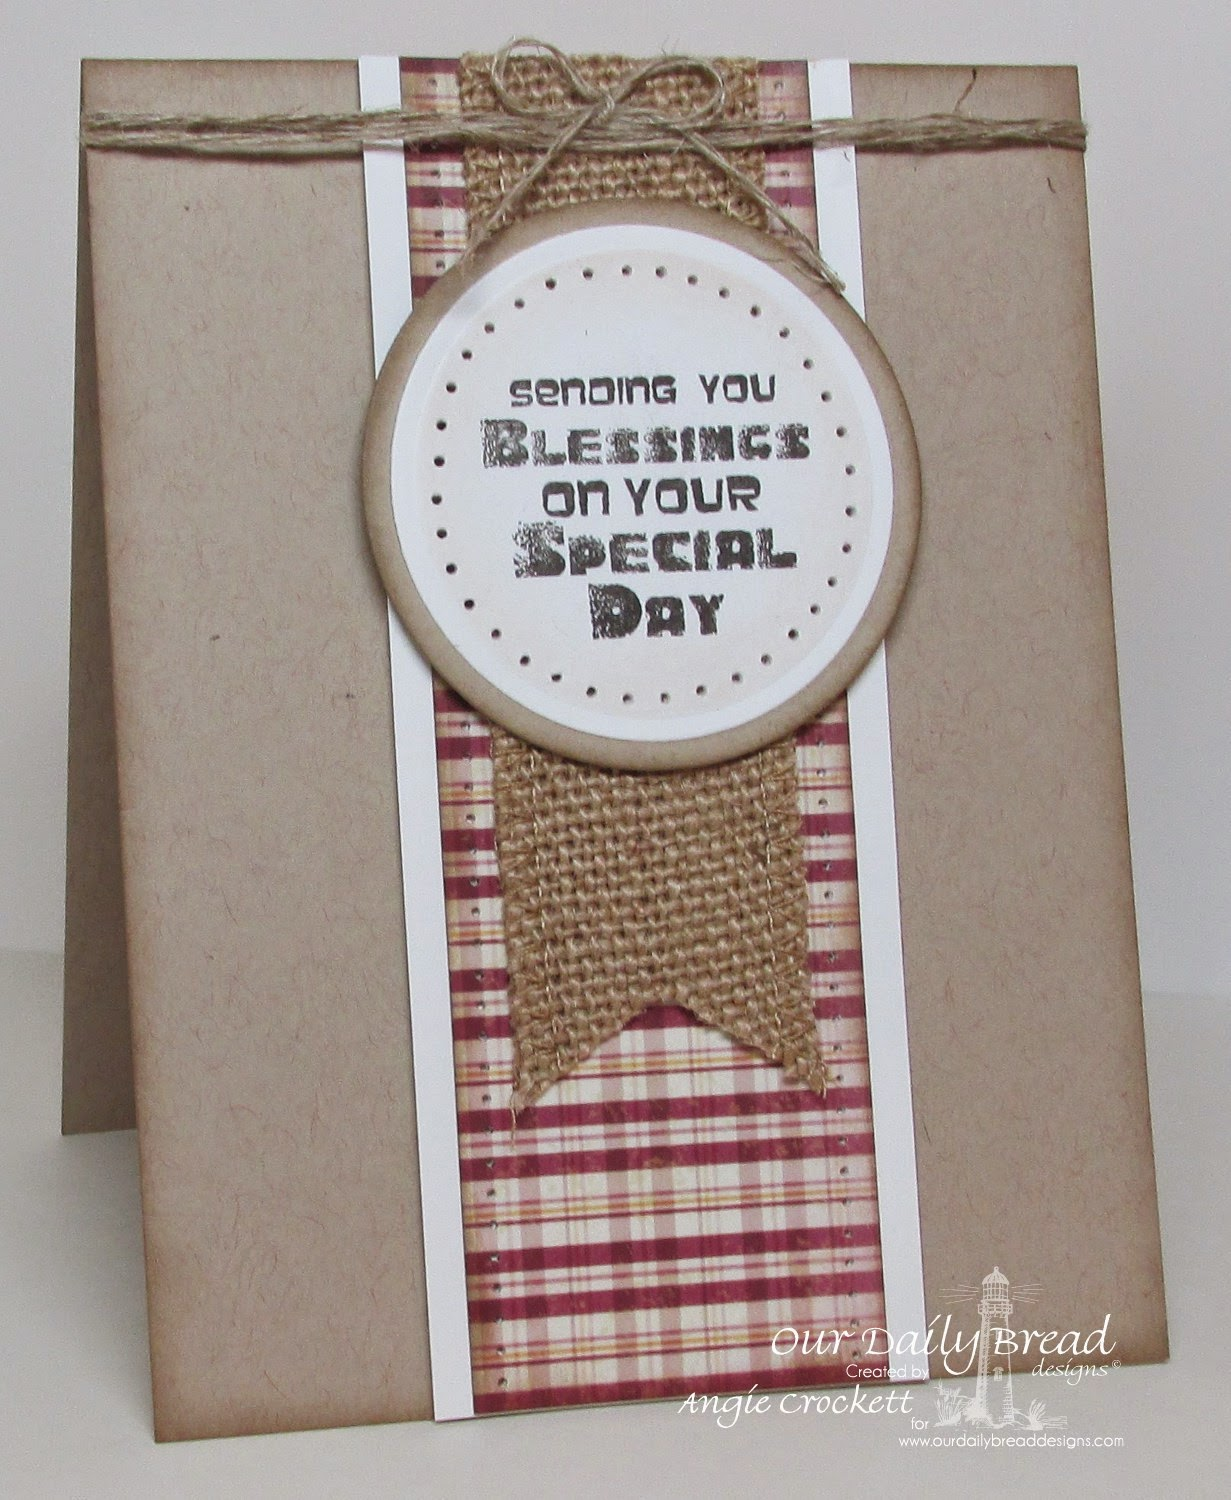 ODBD Special Boy, ODBD Rustic Beauty Designer Paper Collection, Card Designer Angie Crockett